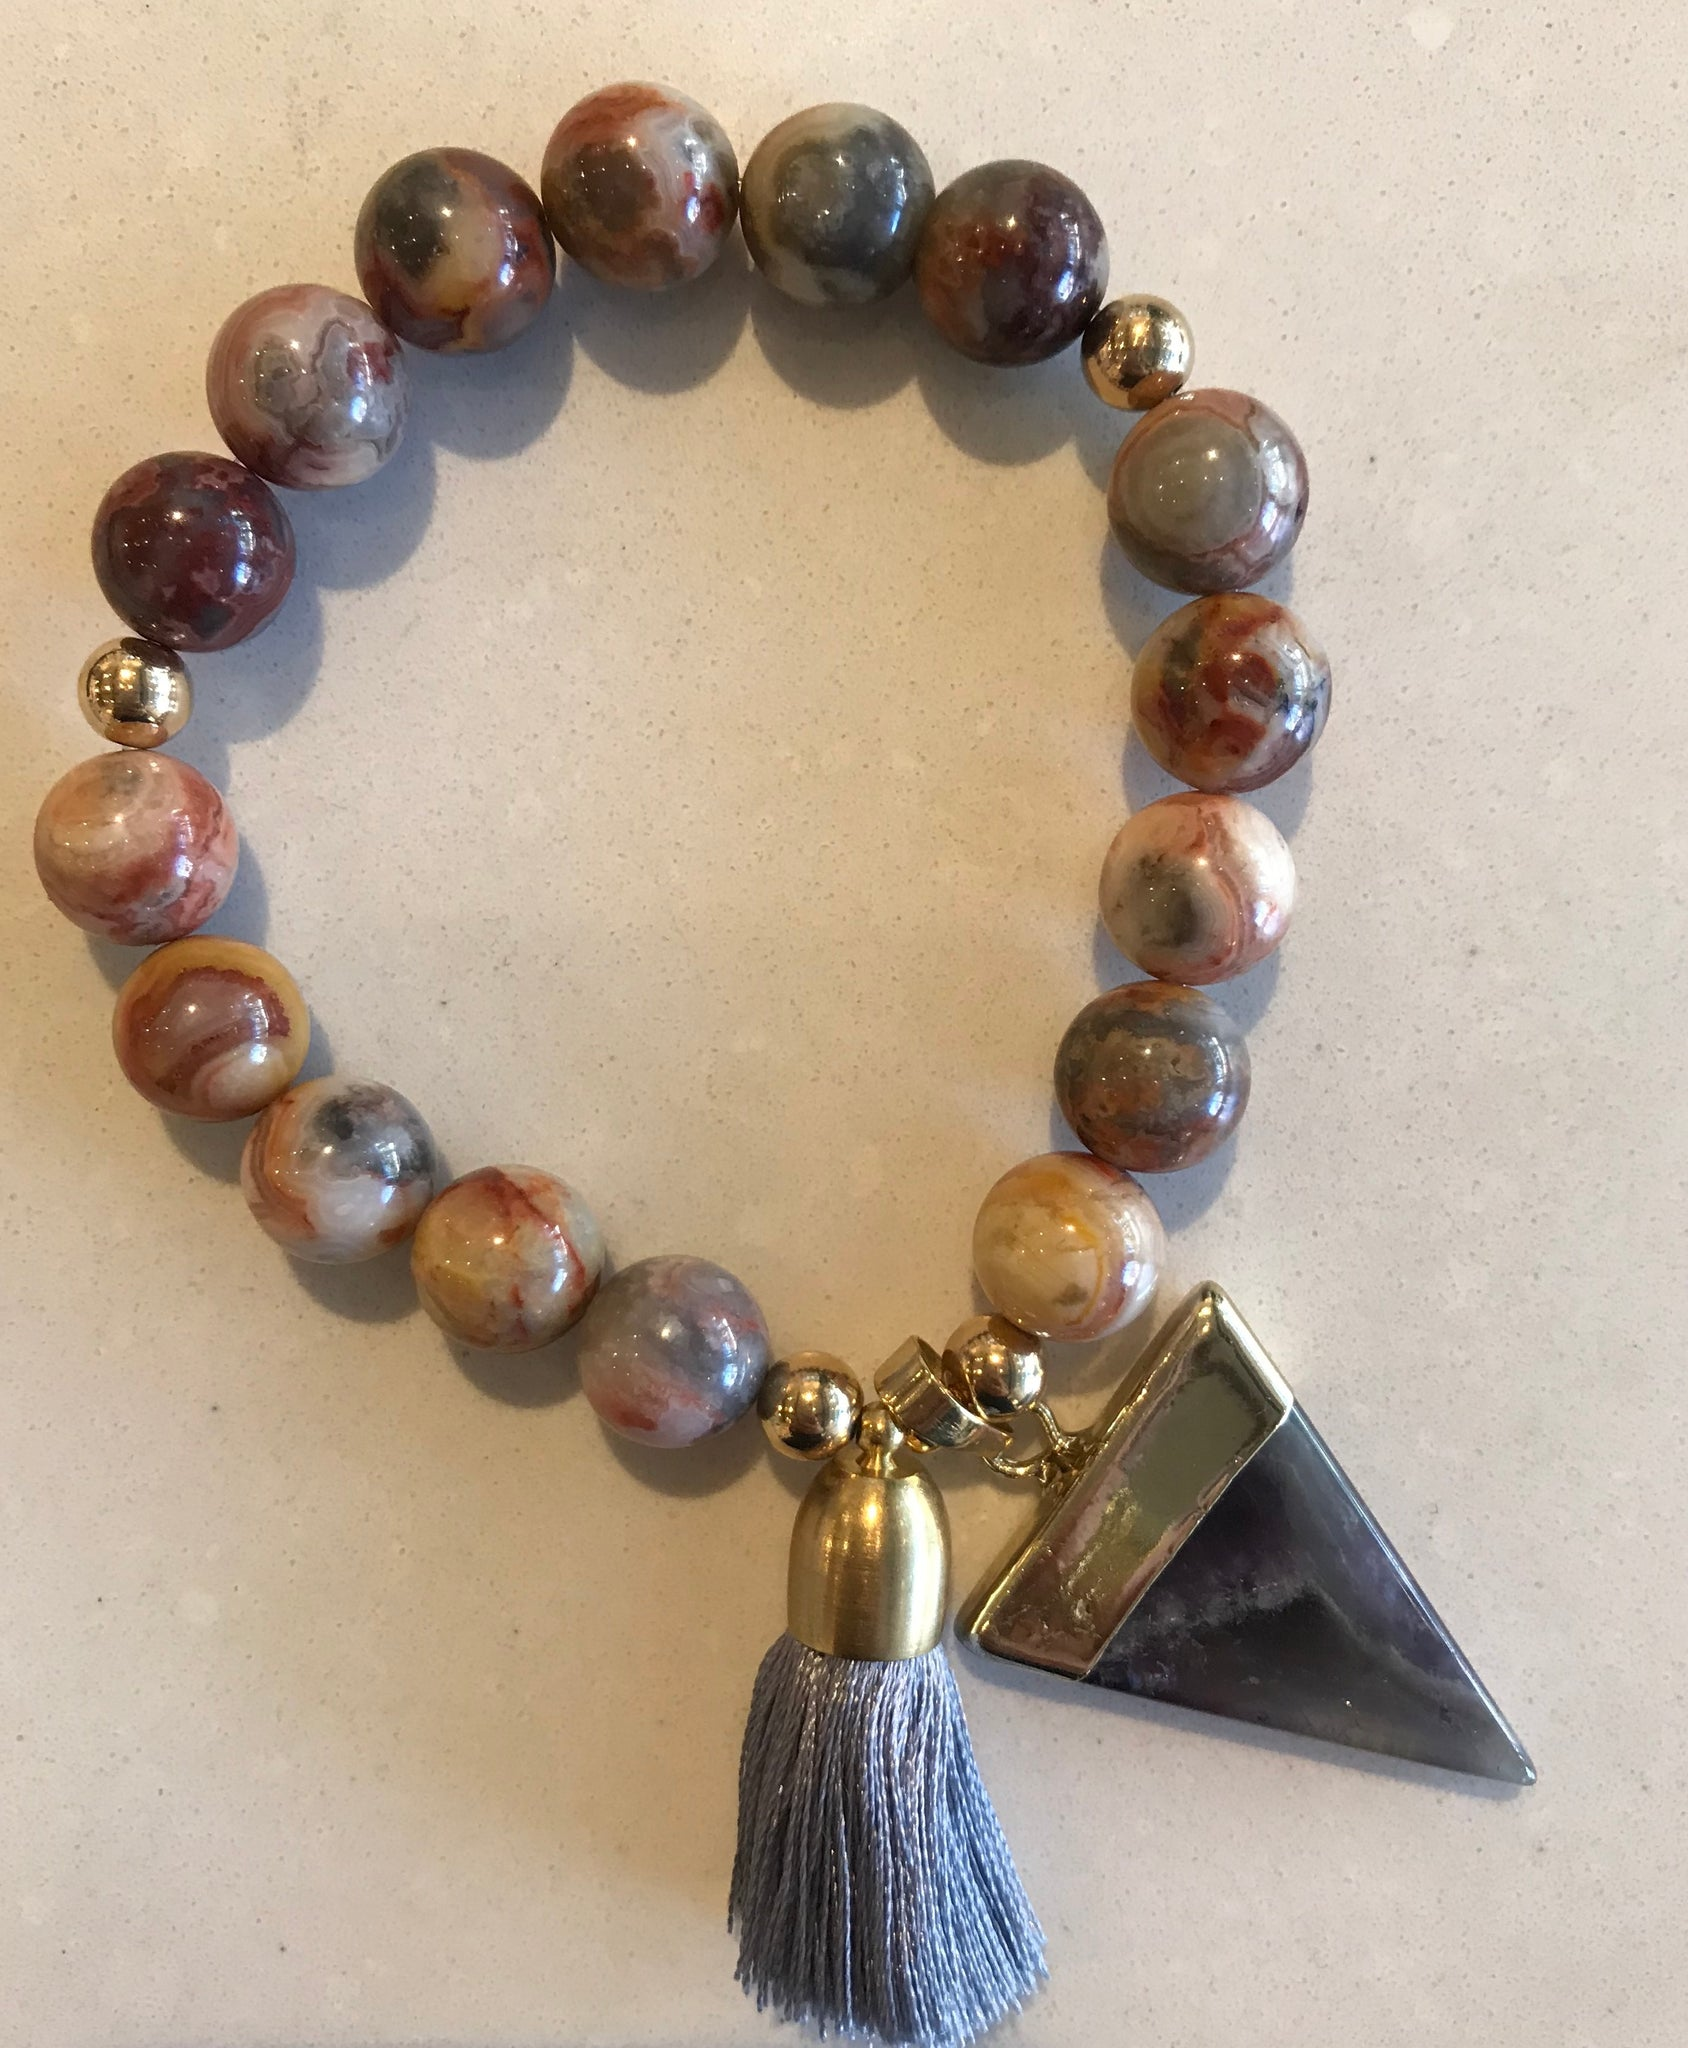 Sunny Somewhere Bracelet - Large Earth Tones with Stone Charm